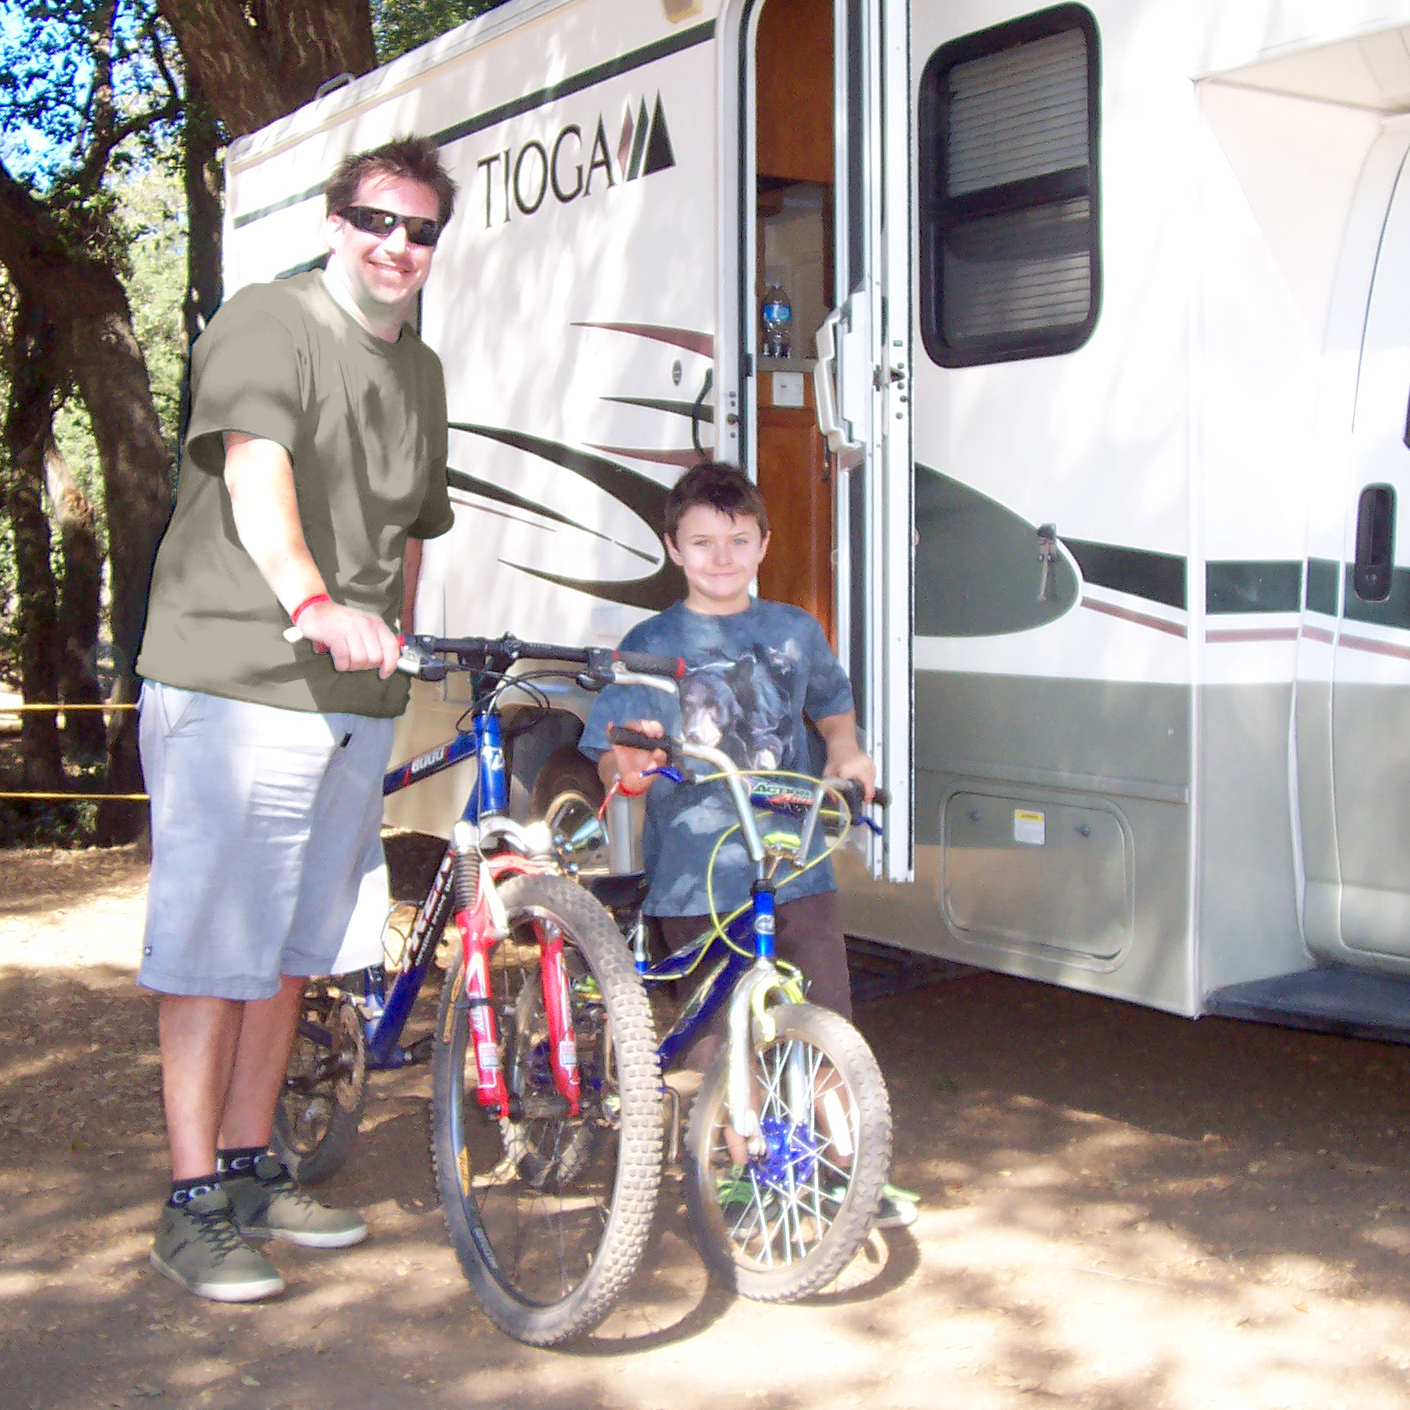 Father and son with bikes in front of an RV